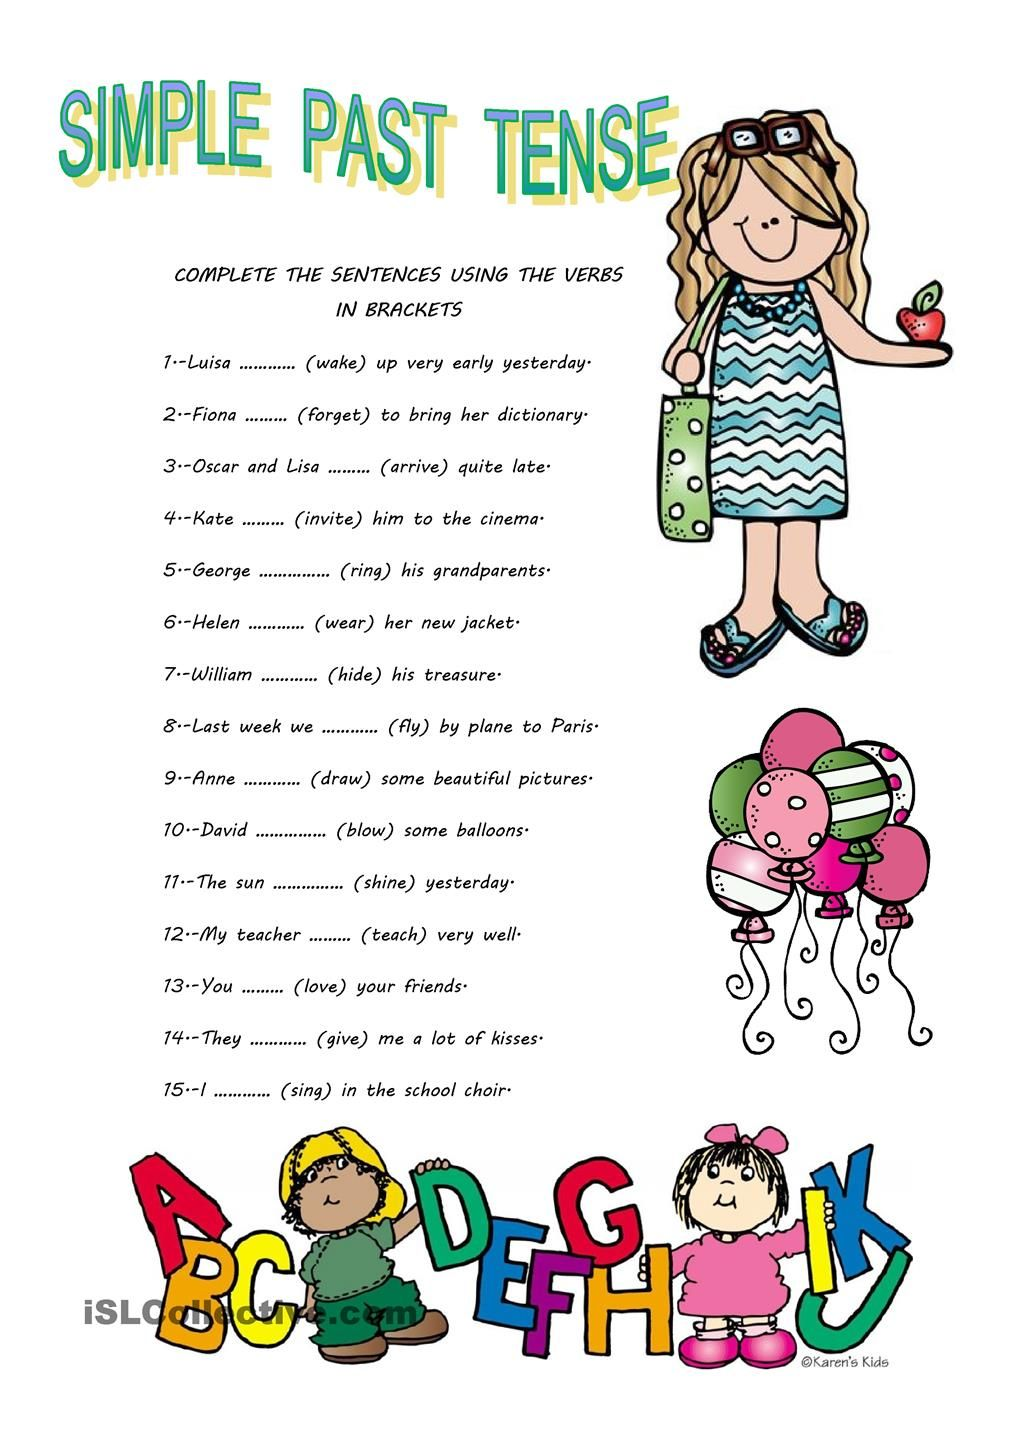 SIMPLE PAST TENSE (With images) Simple past tense, Past